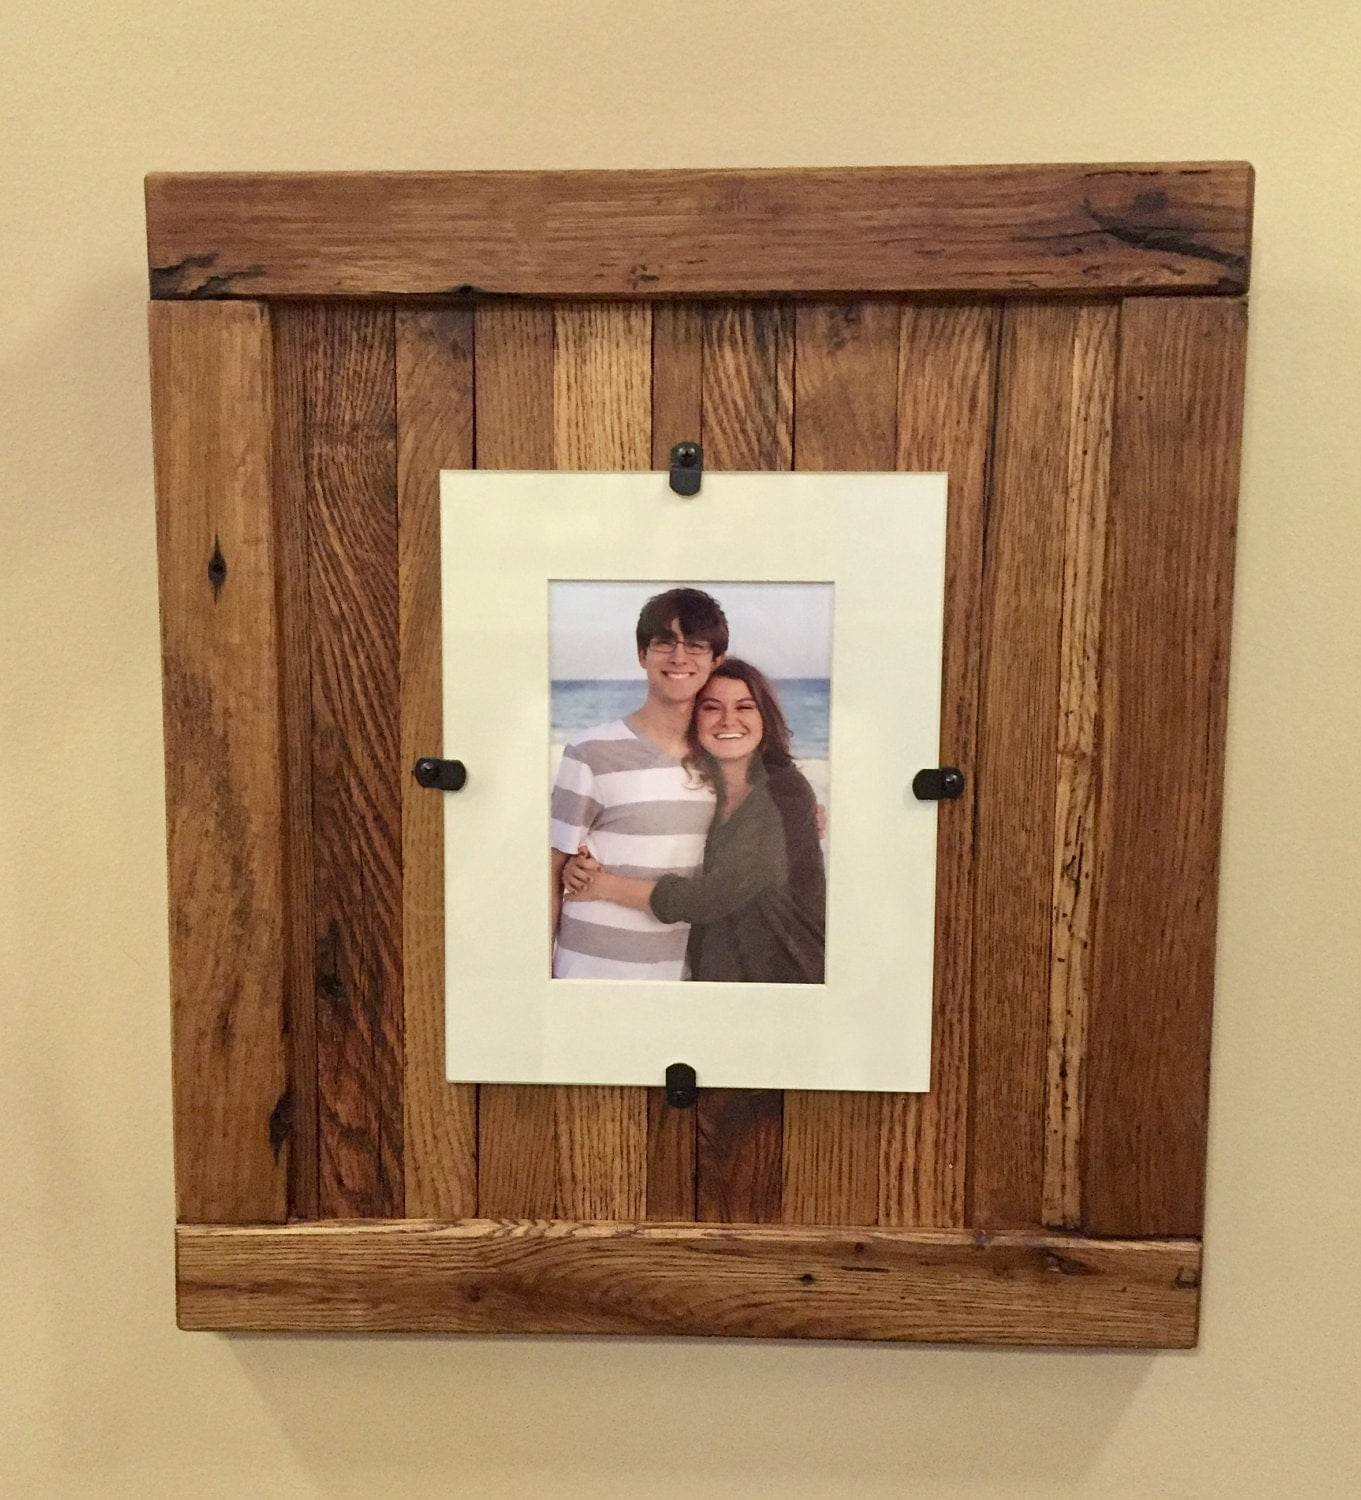 Reclaimed wood frames rustic wood frames set of 2 5 x 7 picture reclaimed wood frames rustic wood frames set of 2 5 x 7 picture frame with mat 8 x 10 picture frame without mat free shipping jeuxipadfo Image collections